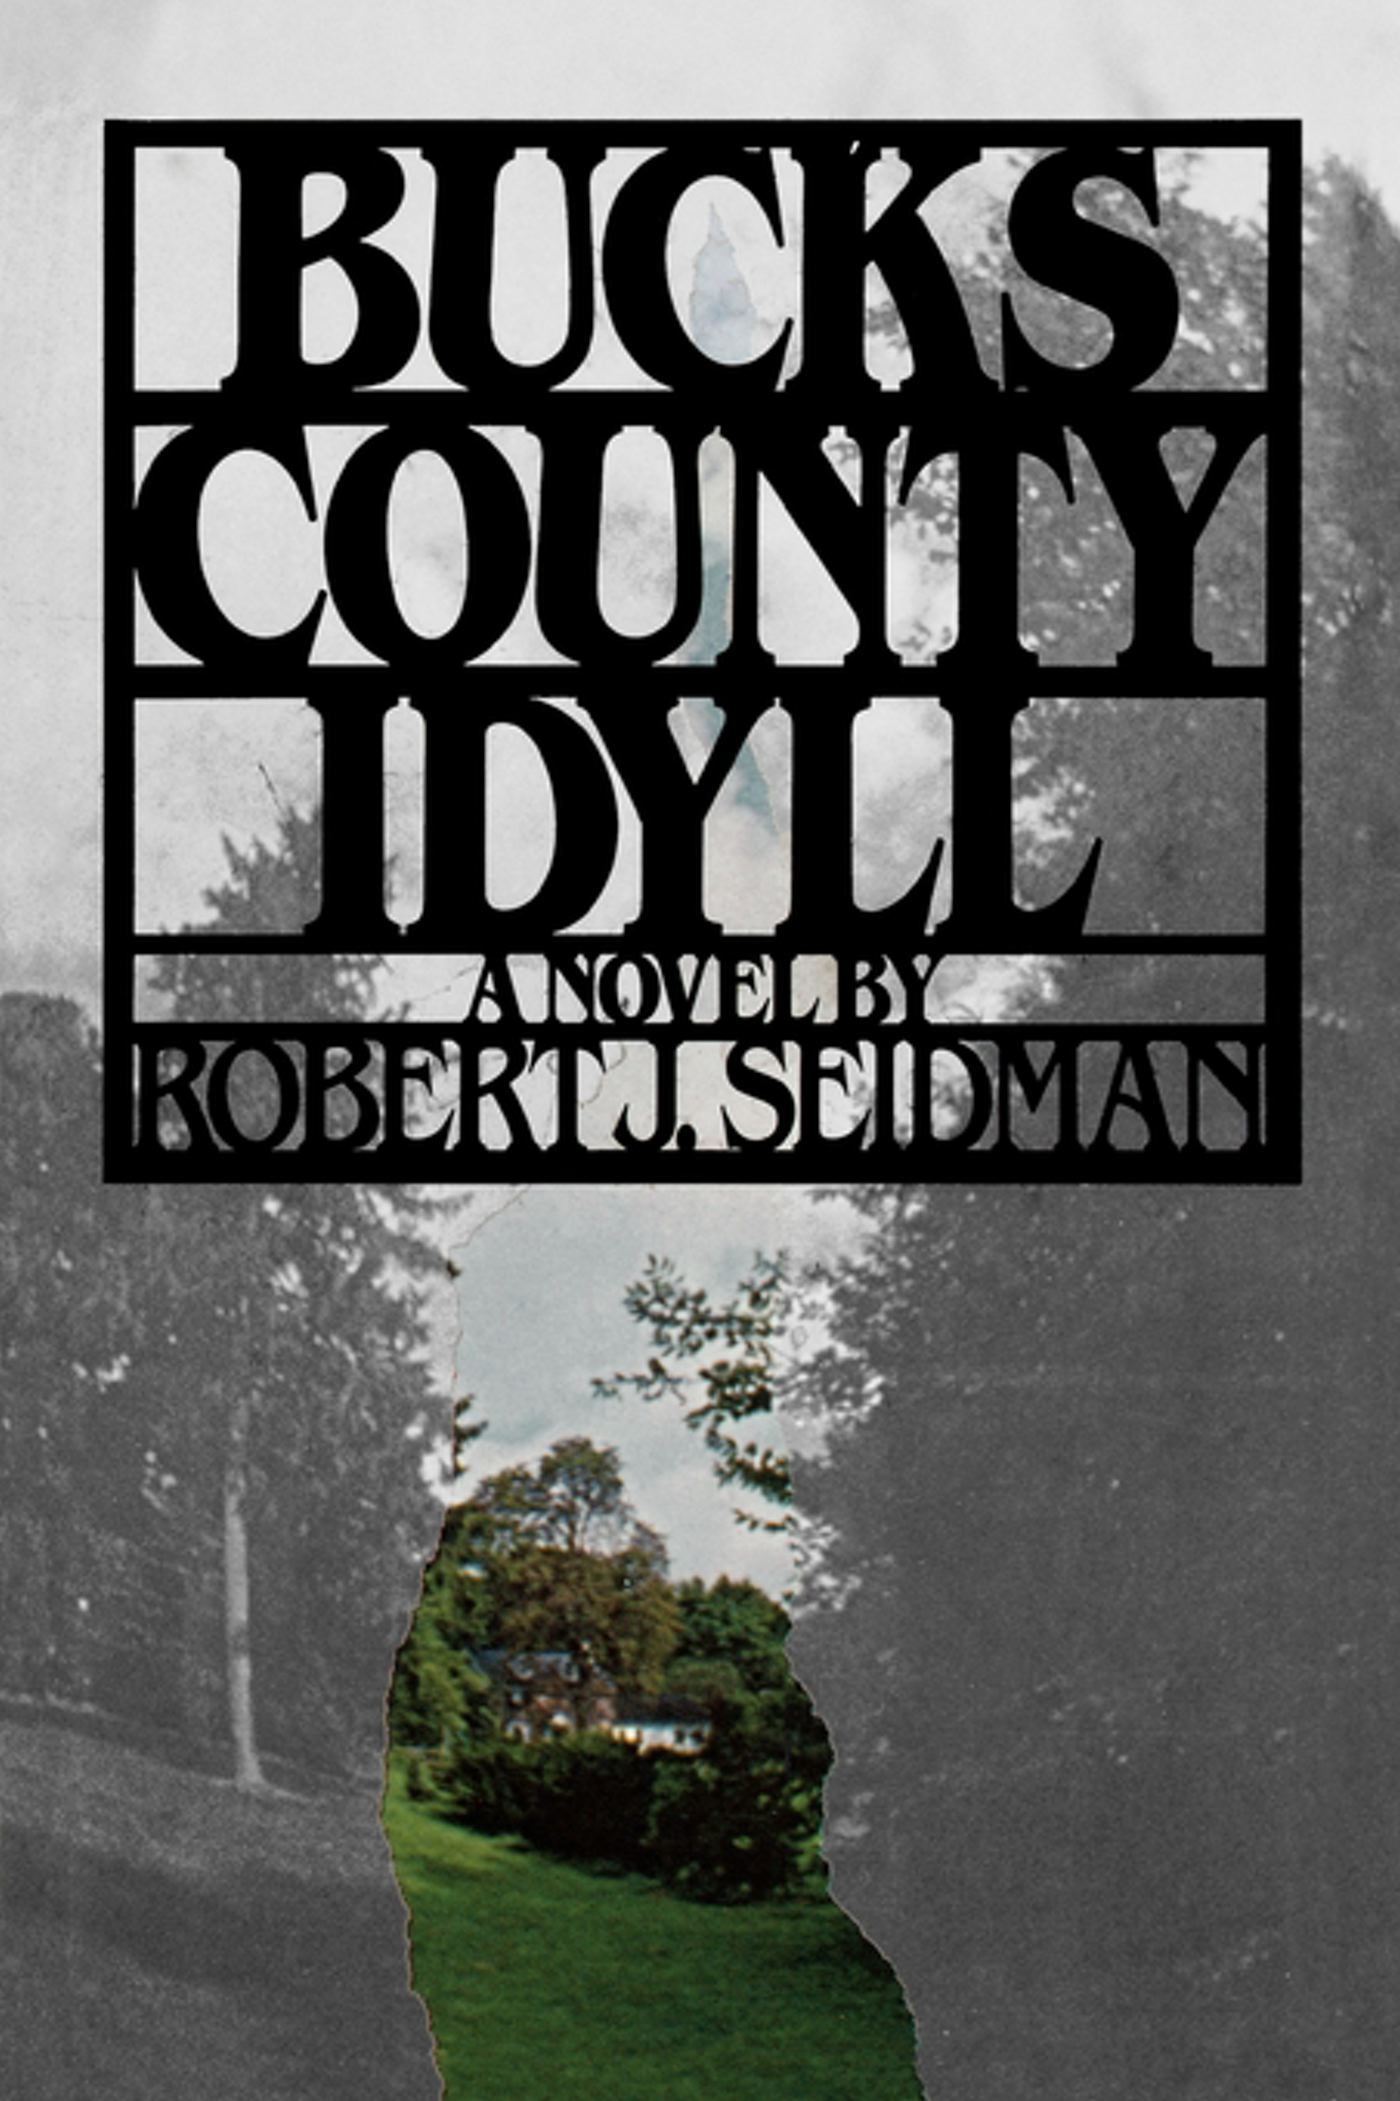 Bucks county idyll 9781439183250 hr